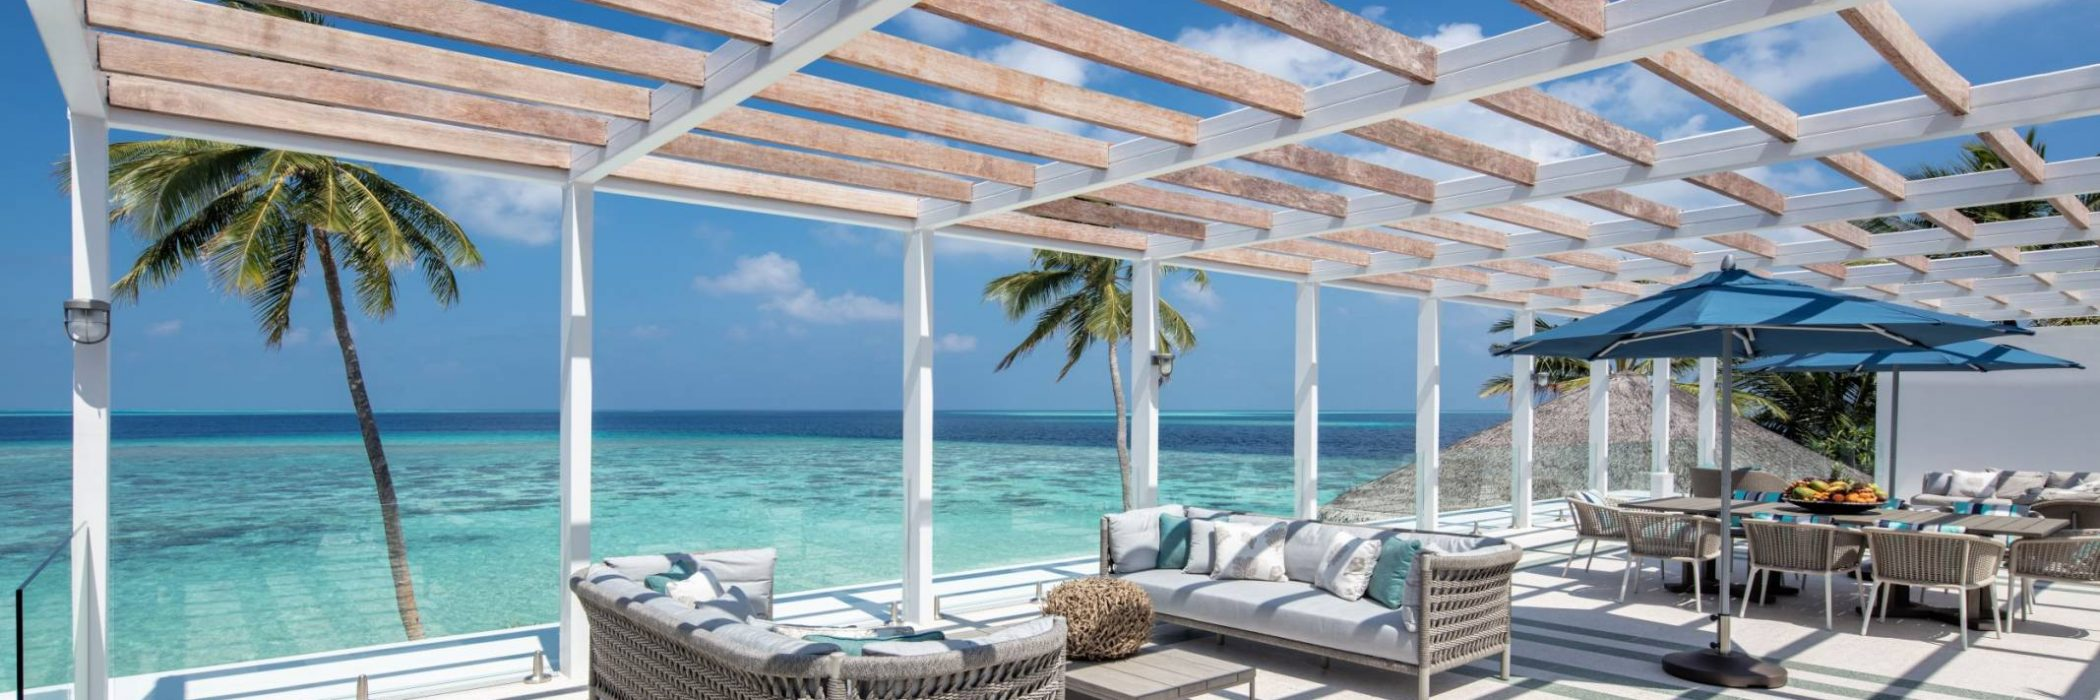 Raffles Maldives Meradhoo - How to choose where to stay in the Maldives